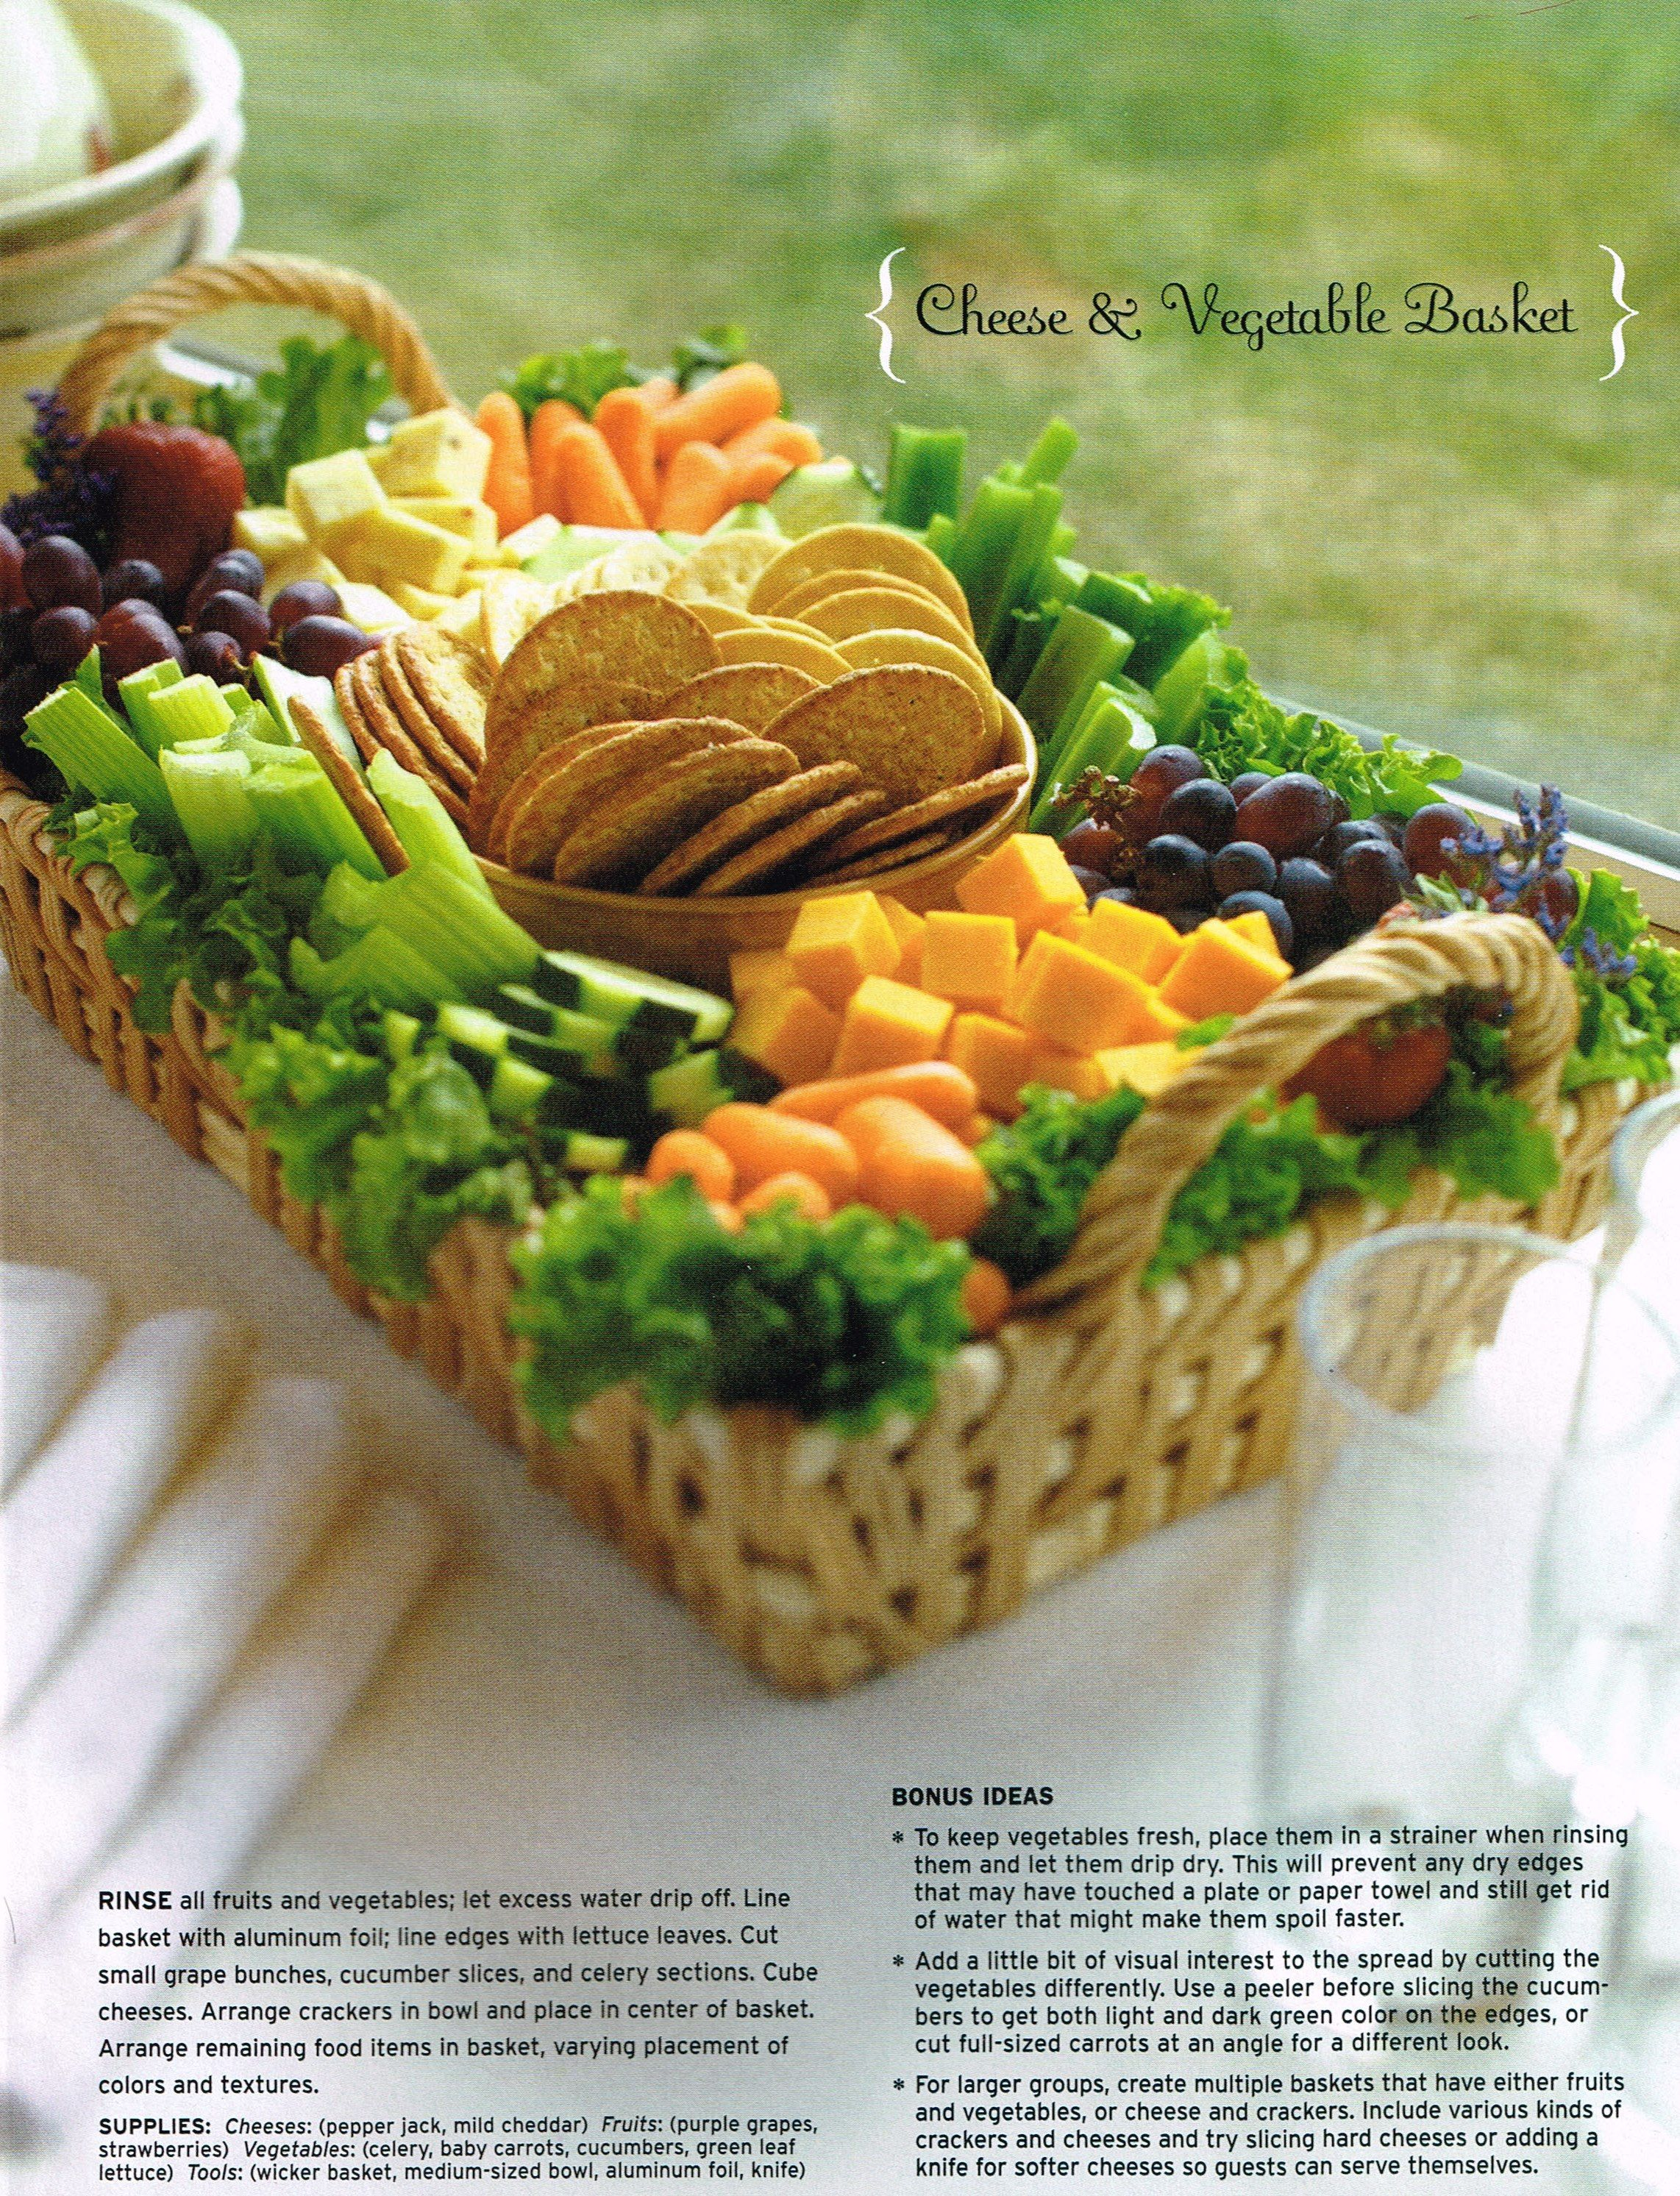 Potluck | Cheese, cracker, fruit, veggie tray..love the basket lined with kale/ curly lettuce